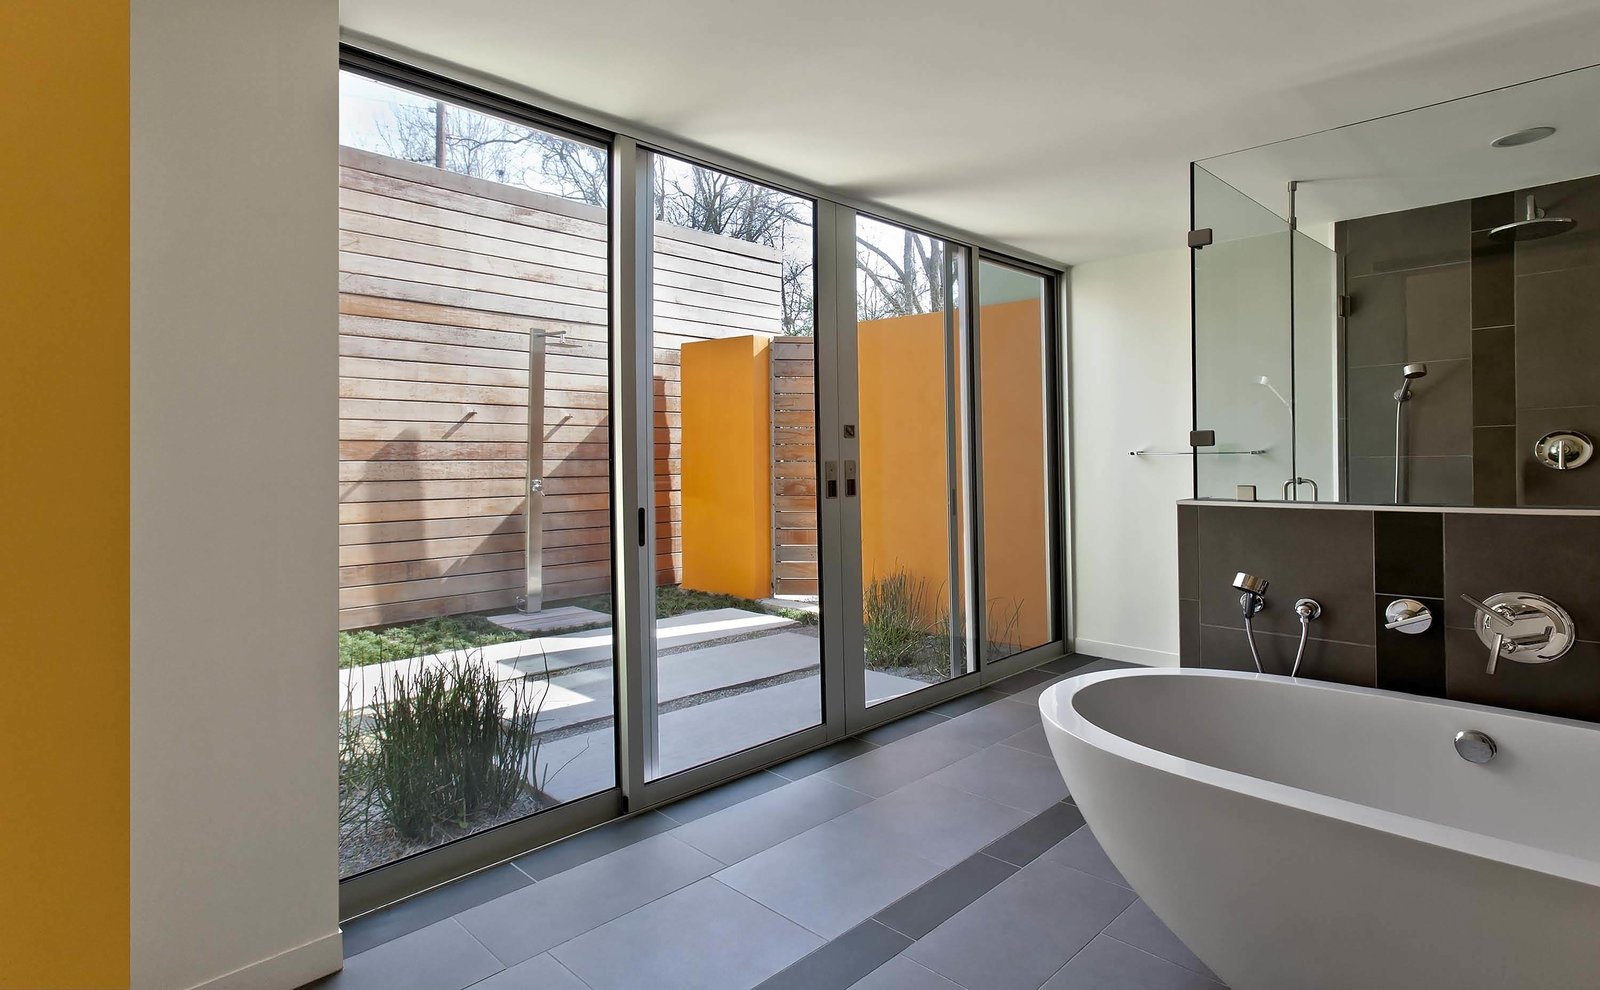 Nestled in between the master bedroom addition and the master bathroom is an outdoor shower. Just as with the kitchen and patio, floor-to-ceiling glazing and continuous concrete pavers blur the barrier between interior and exterior.  A Renovation Reconnects a House to its Louisiana Landscape by Zachary Edelson